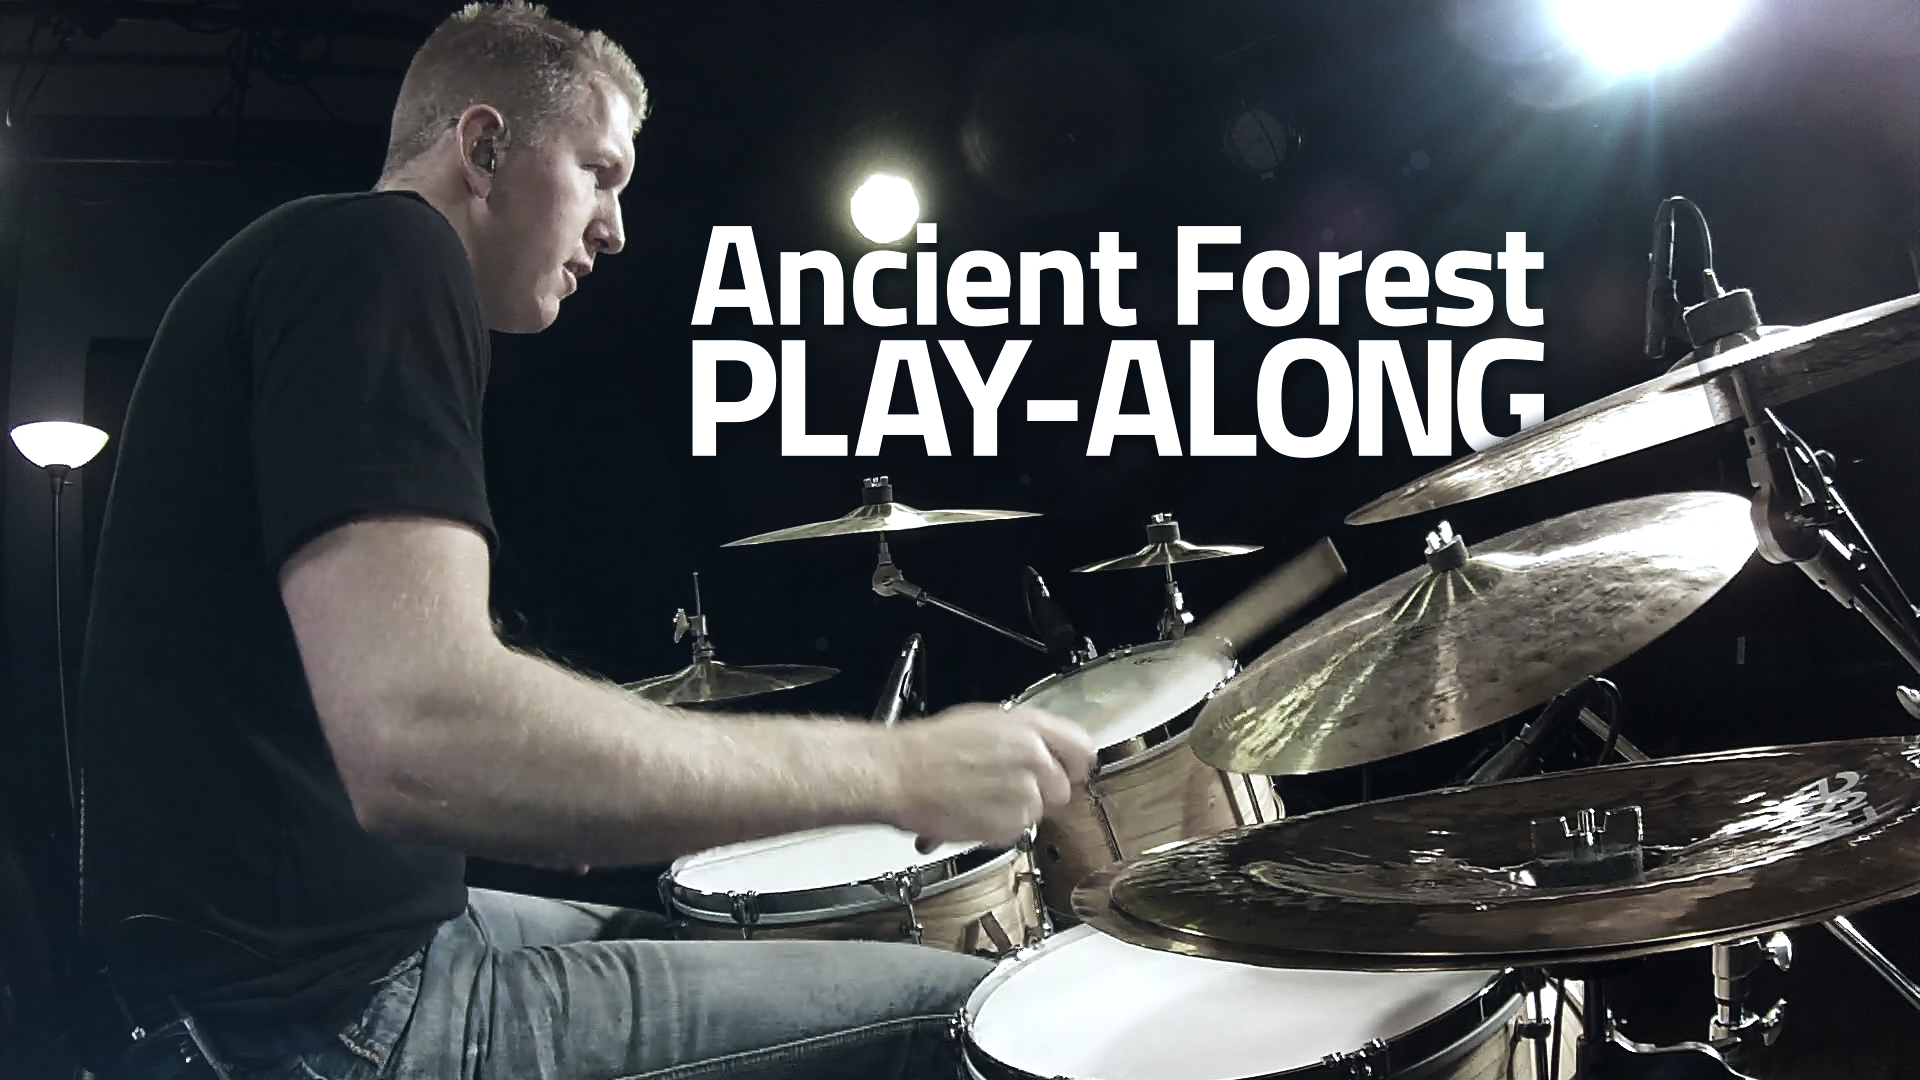 Jared Falk - Ancient Forest Drum Play-Along (free download)